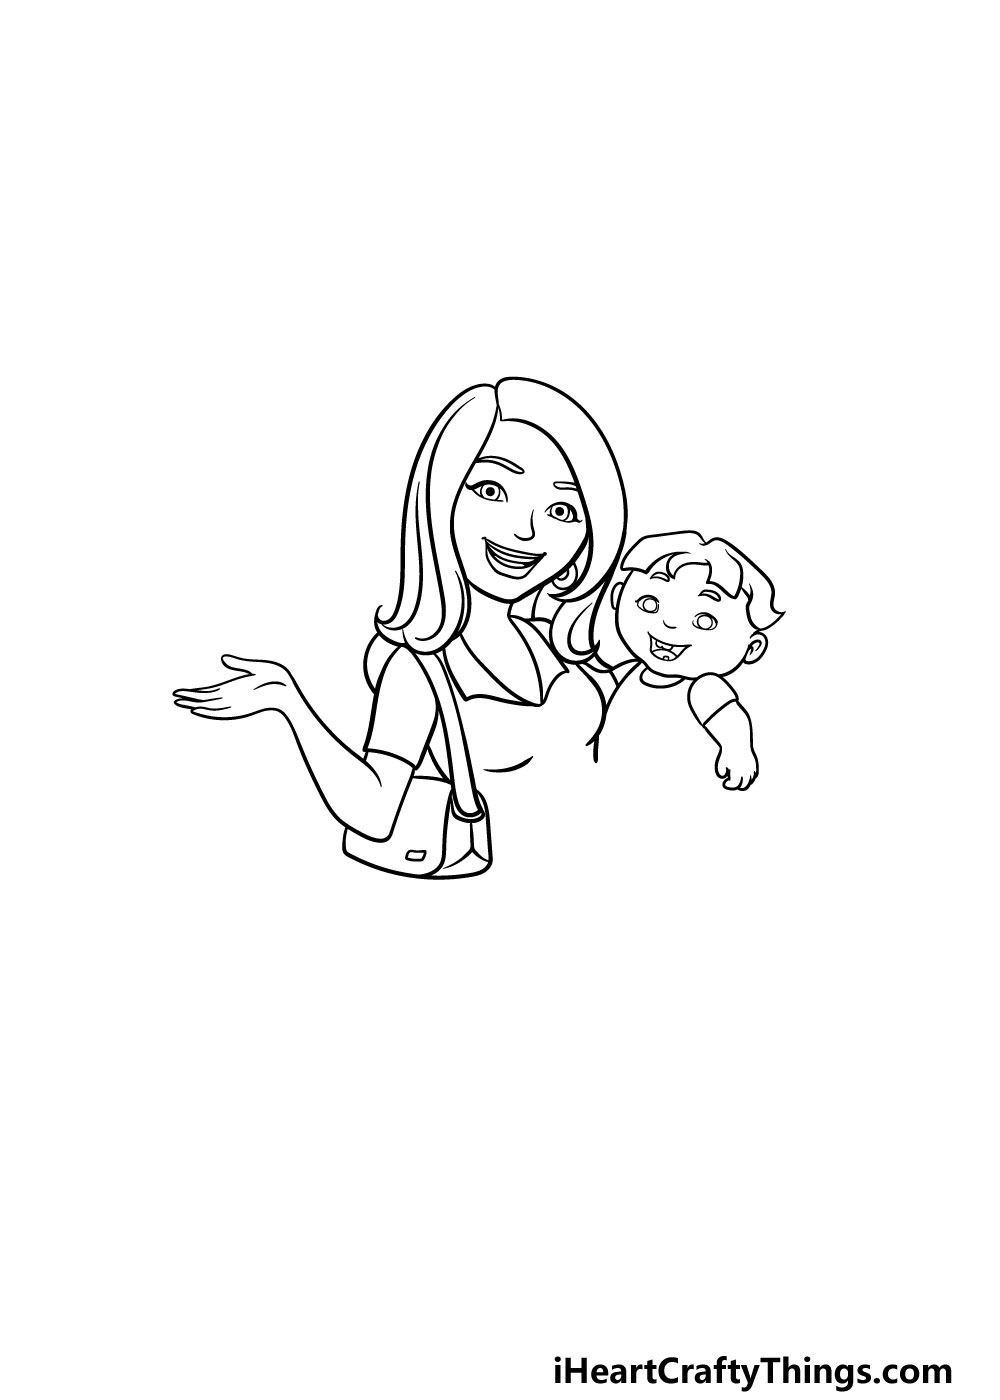 drawing a mom step 4